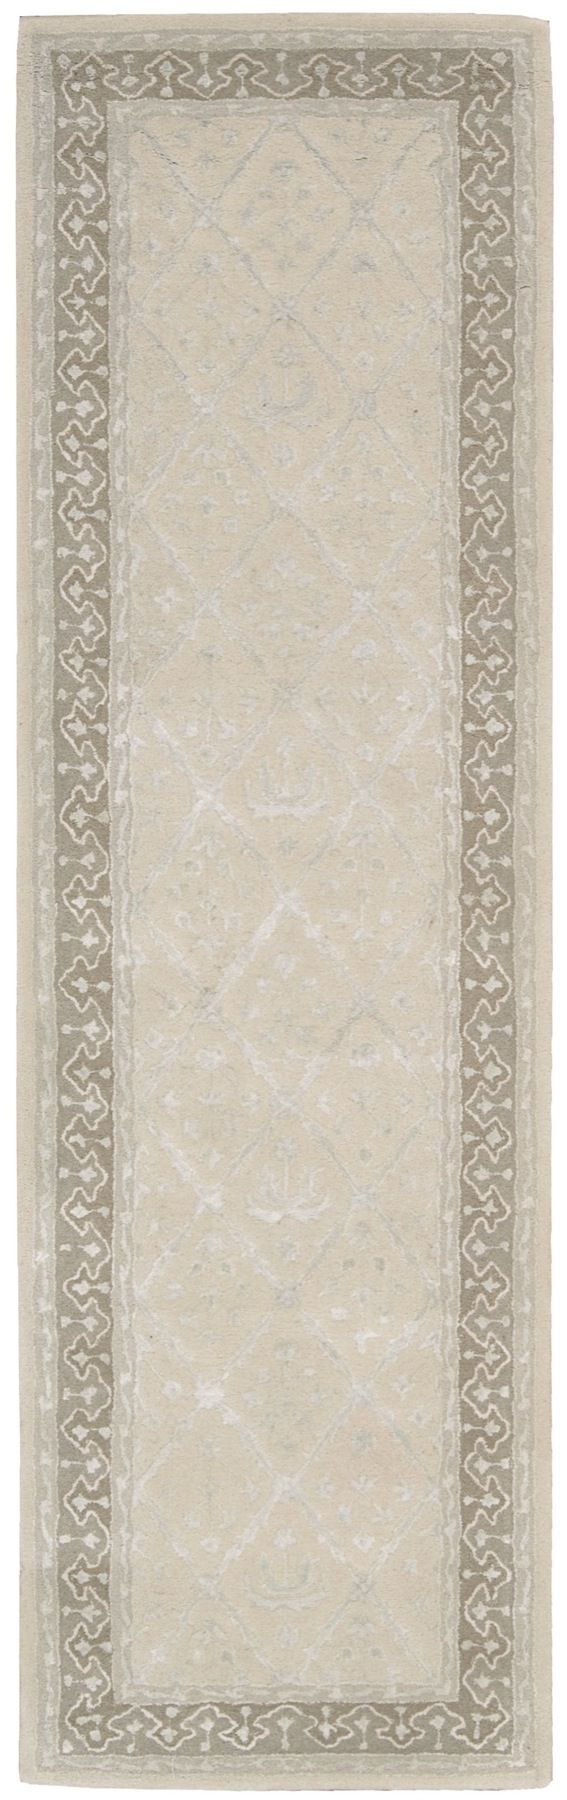 nourison symphony transitional area rug collection